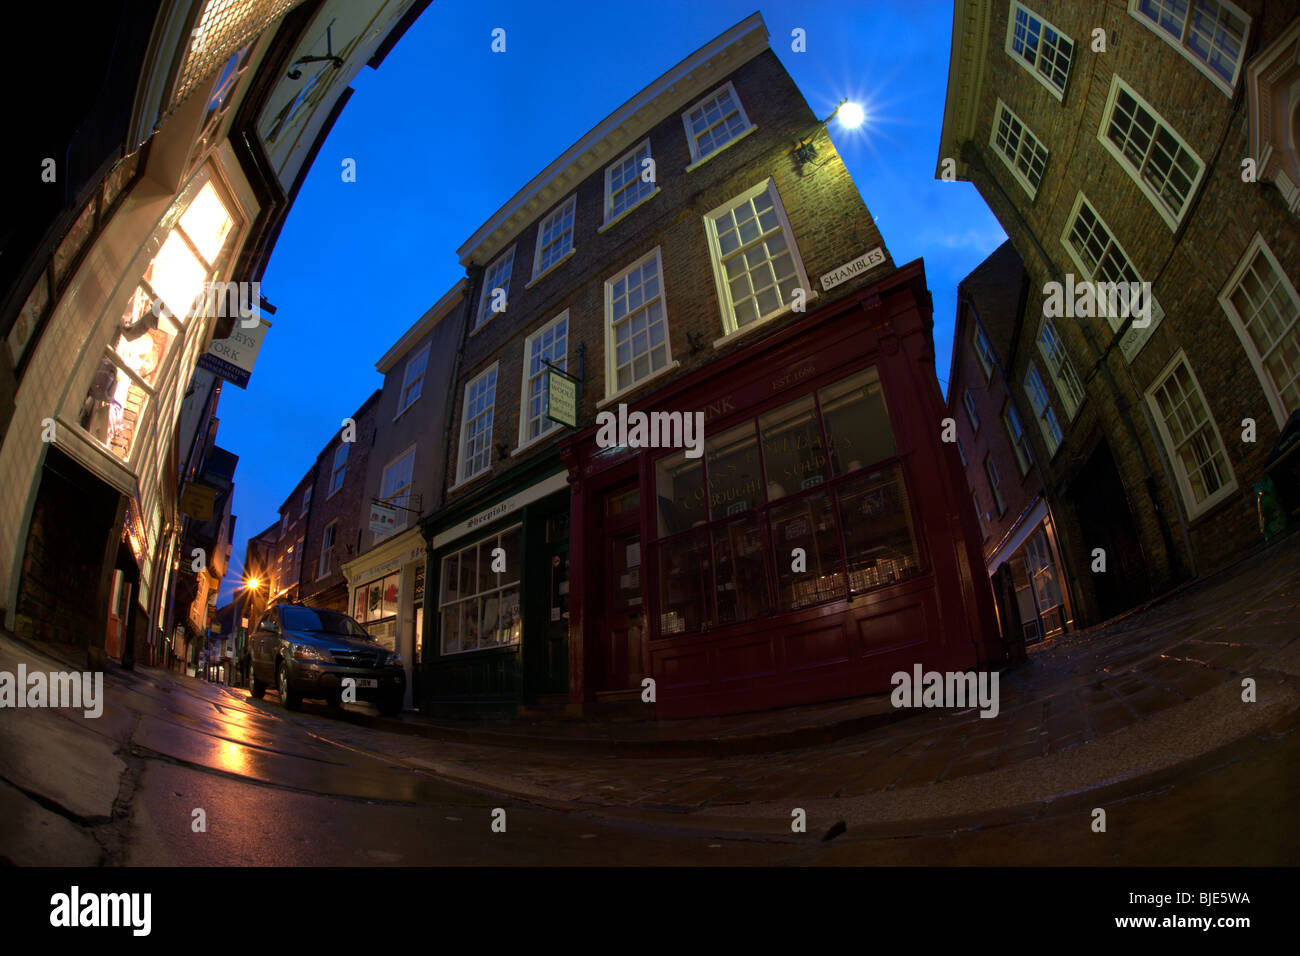 Fisheye view of the Shambles in York at dusk. The pavements are glistening with rain that fell earlier in the day. - Stock Image